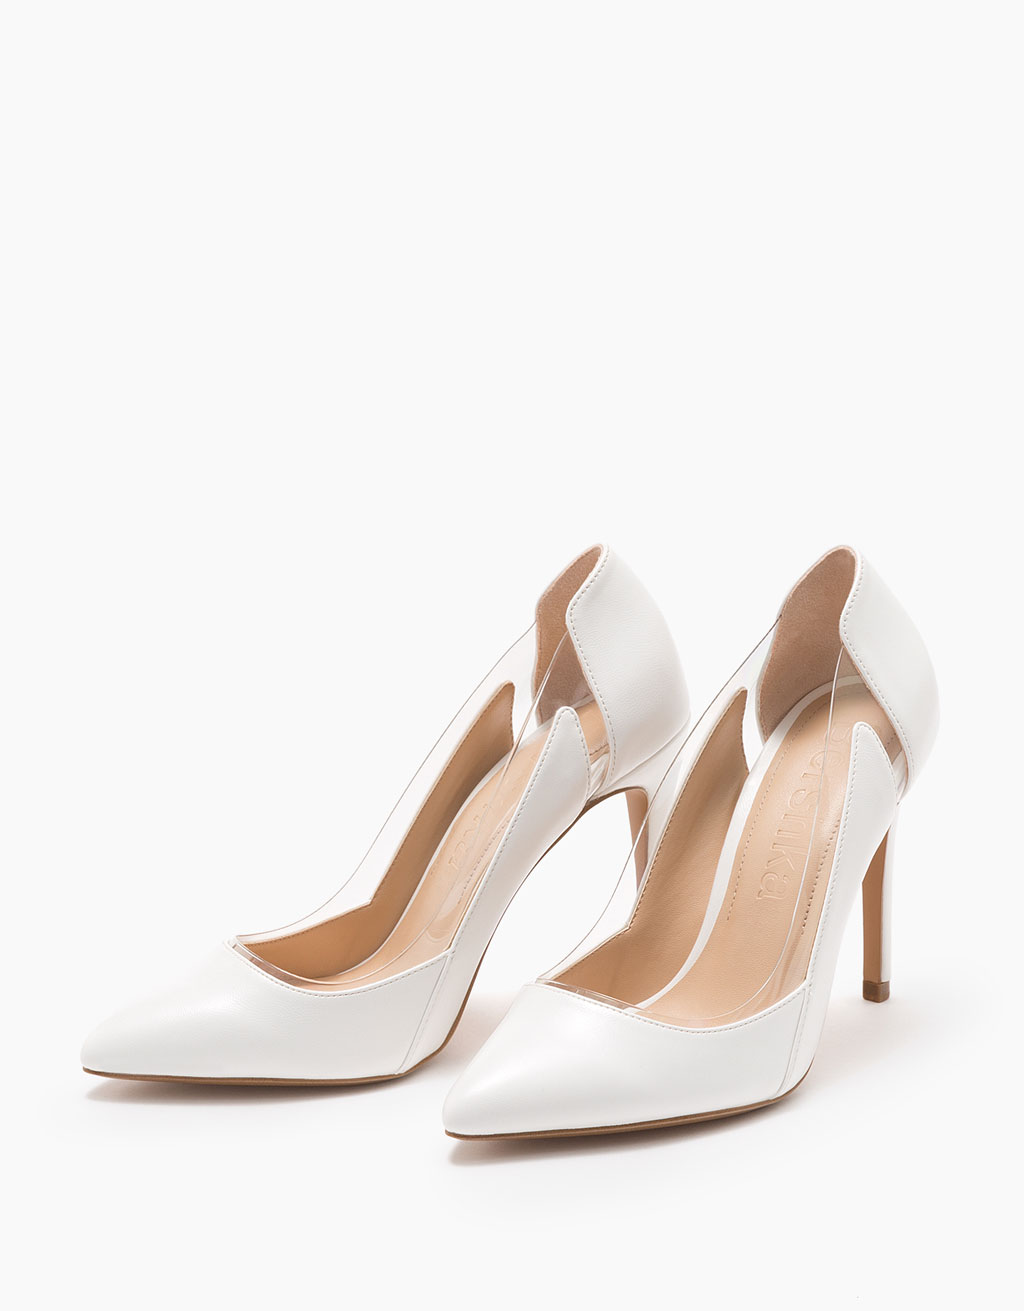 Stiletto-heeled shoes with transparent detail